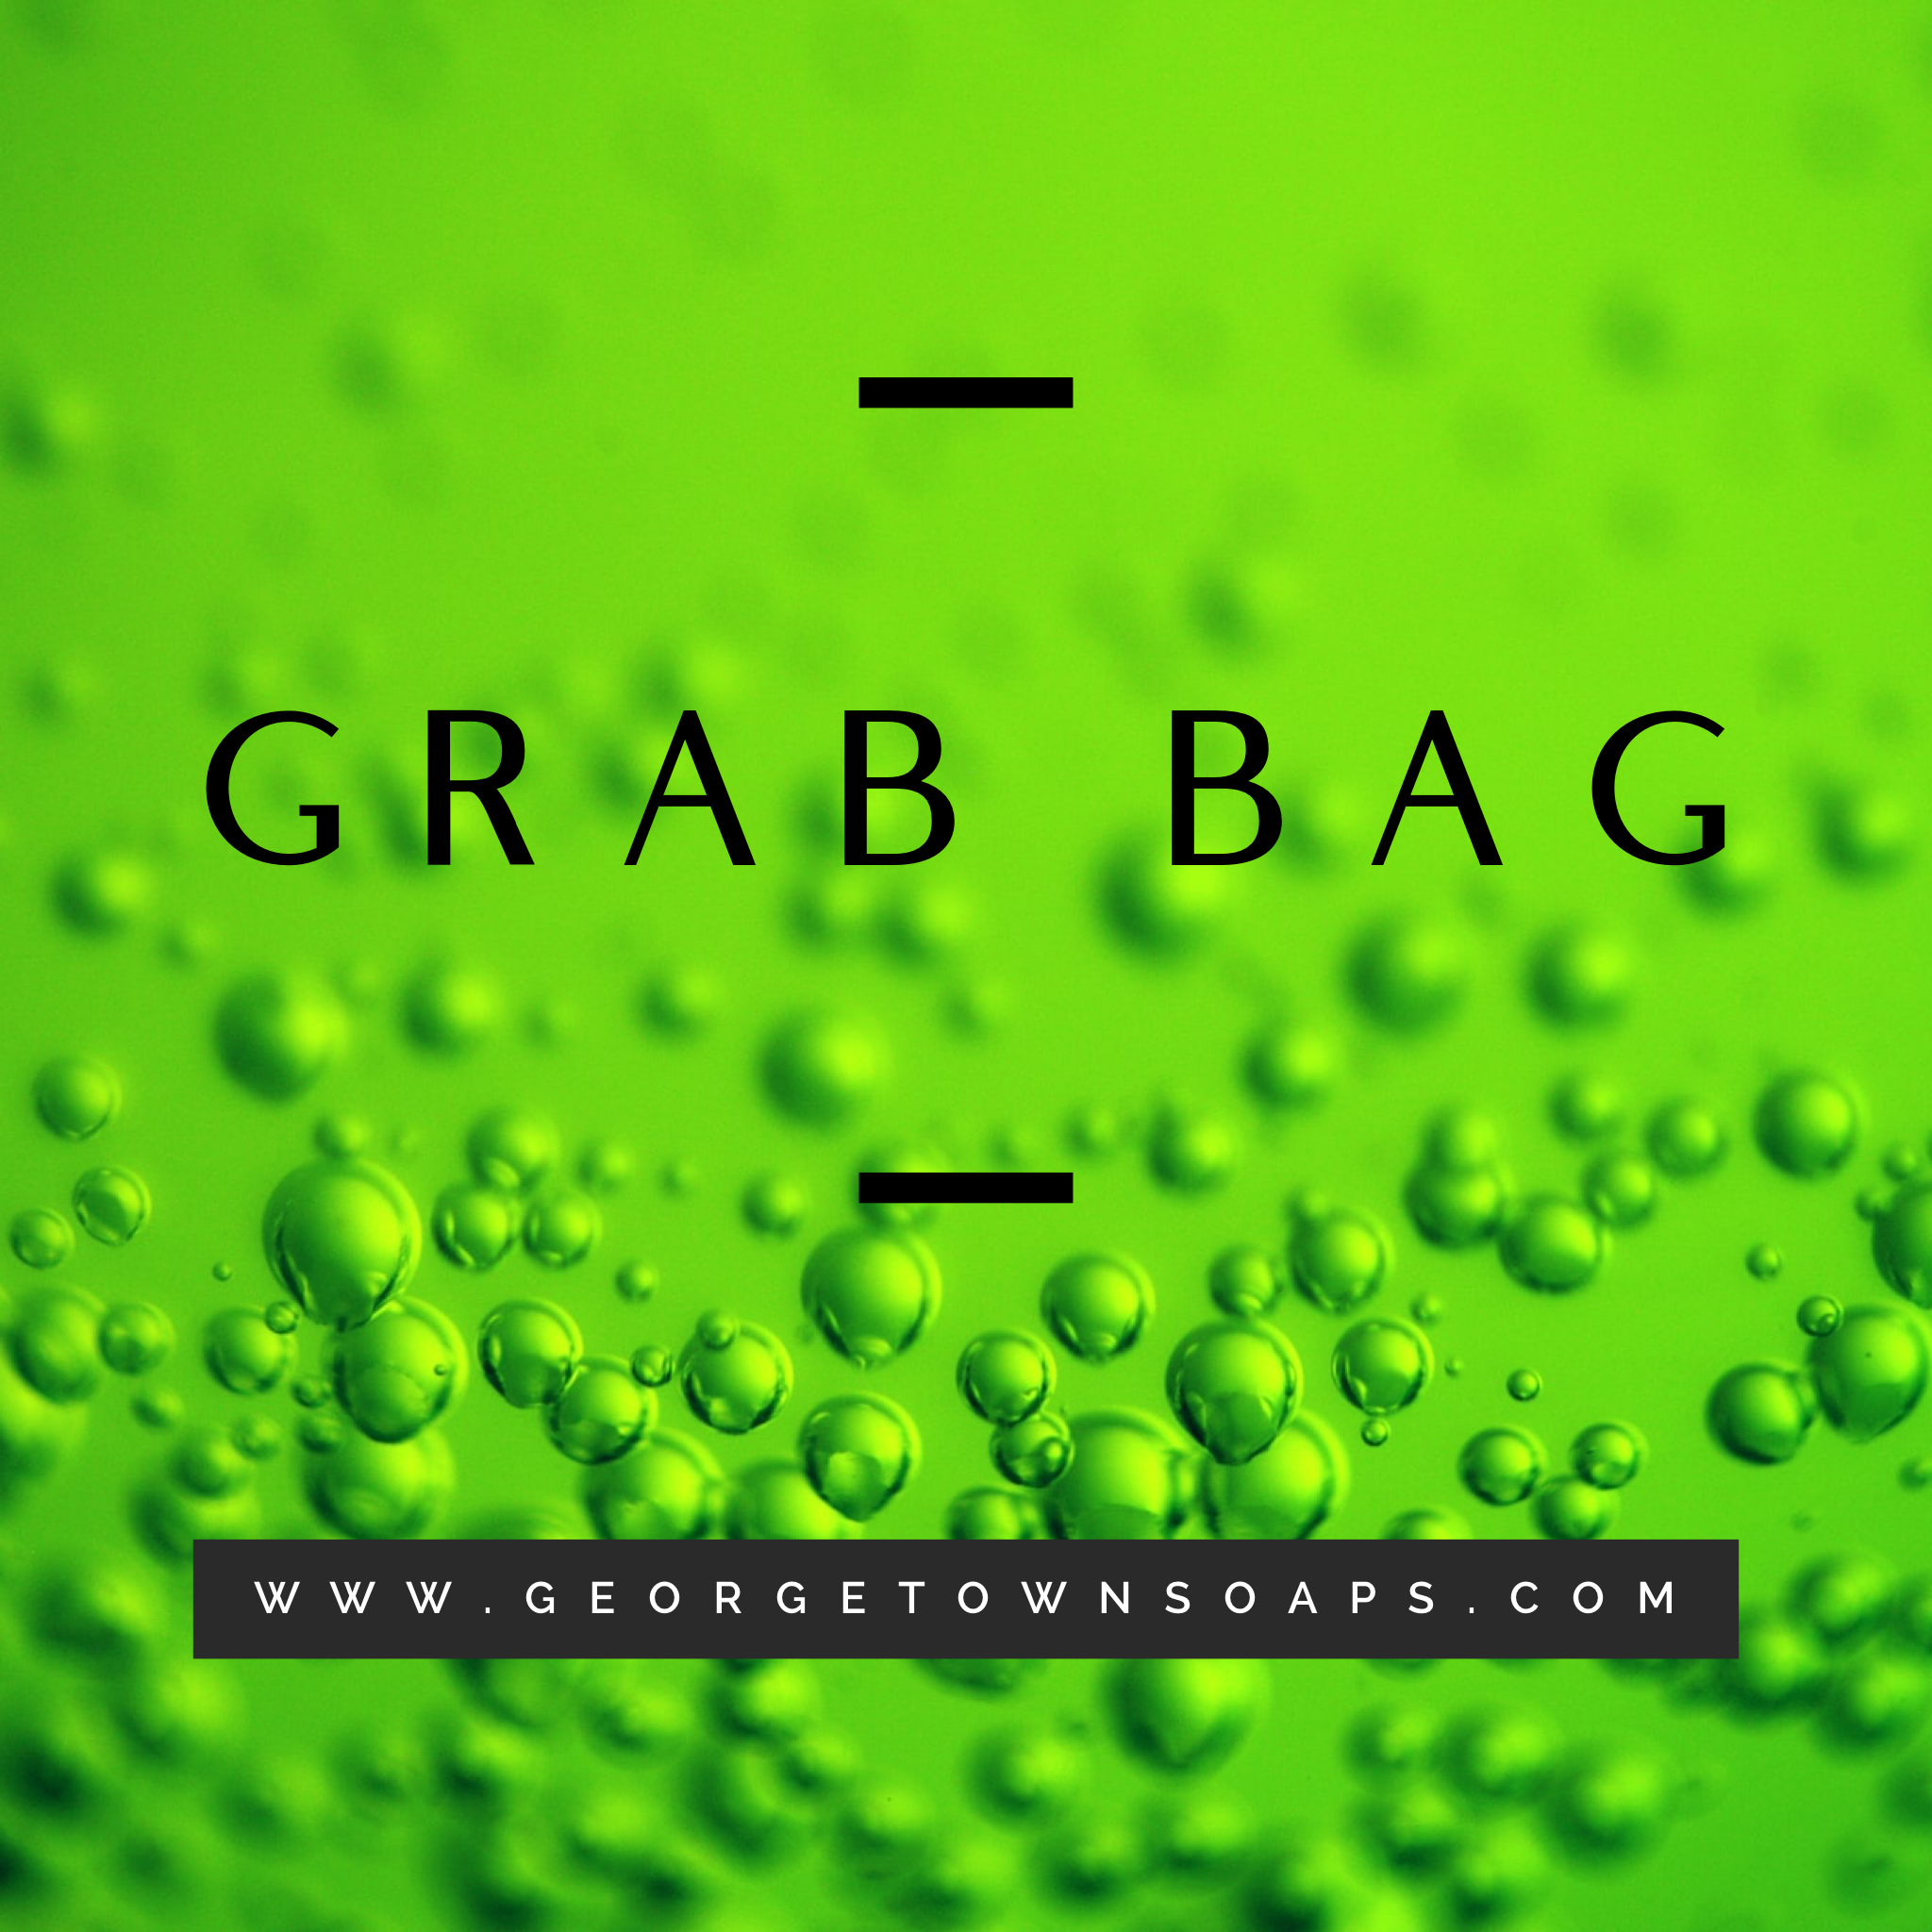 Soap Grap Bag